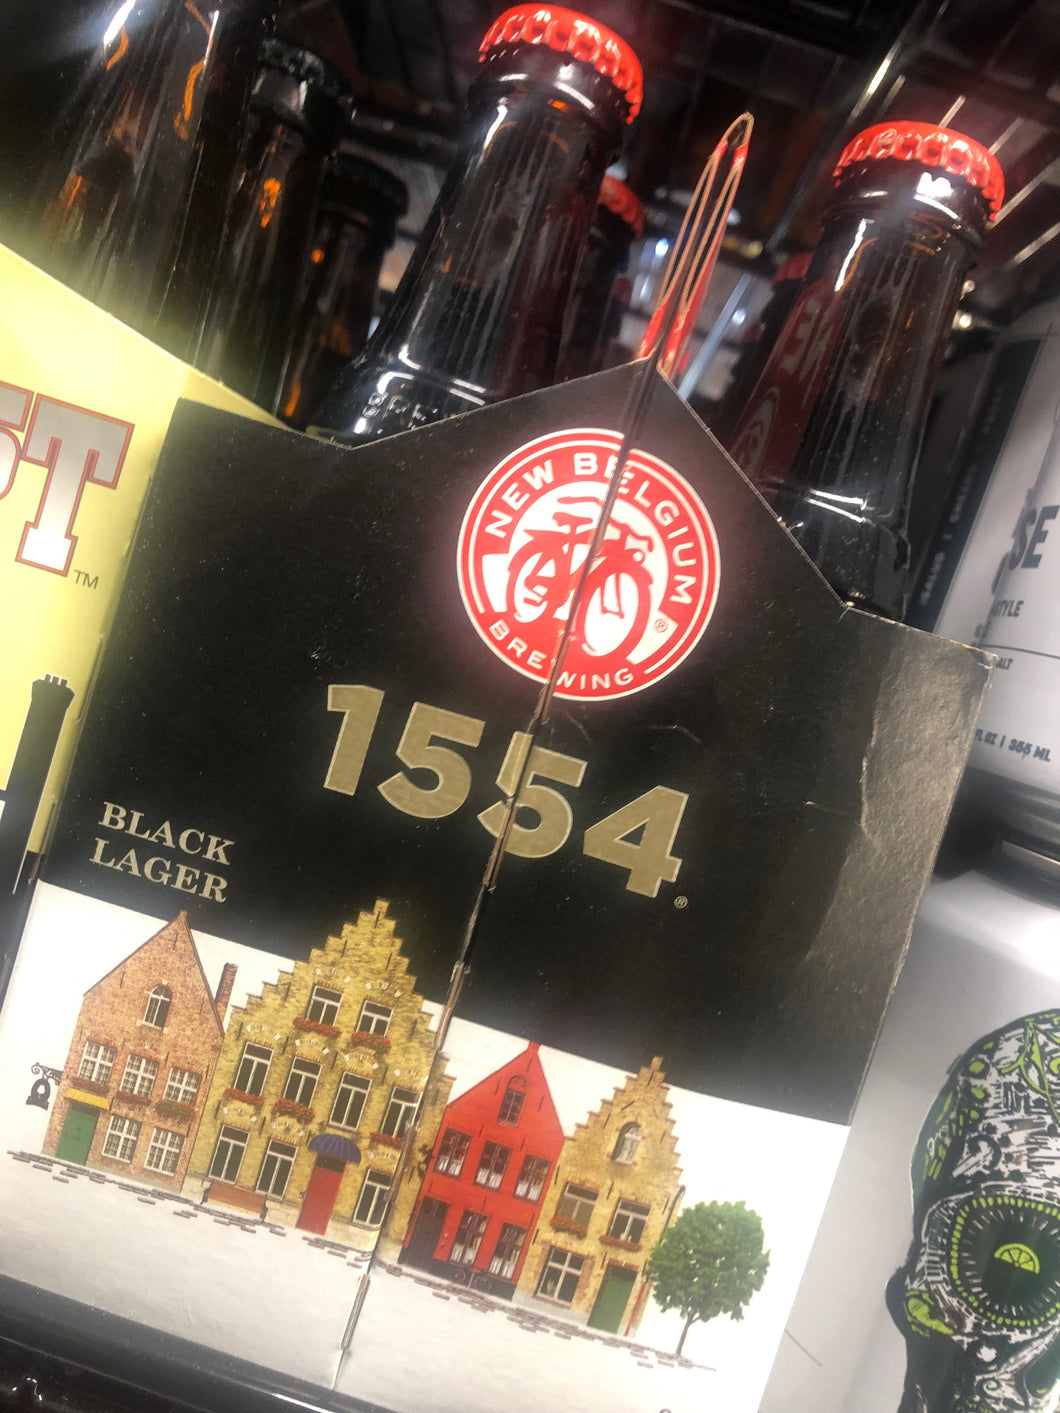 New Belgium 1554 Black Lager 12oz Bottles 6 pk